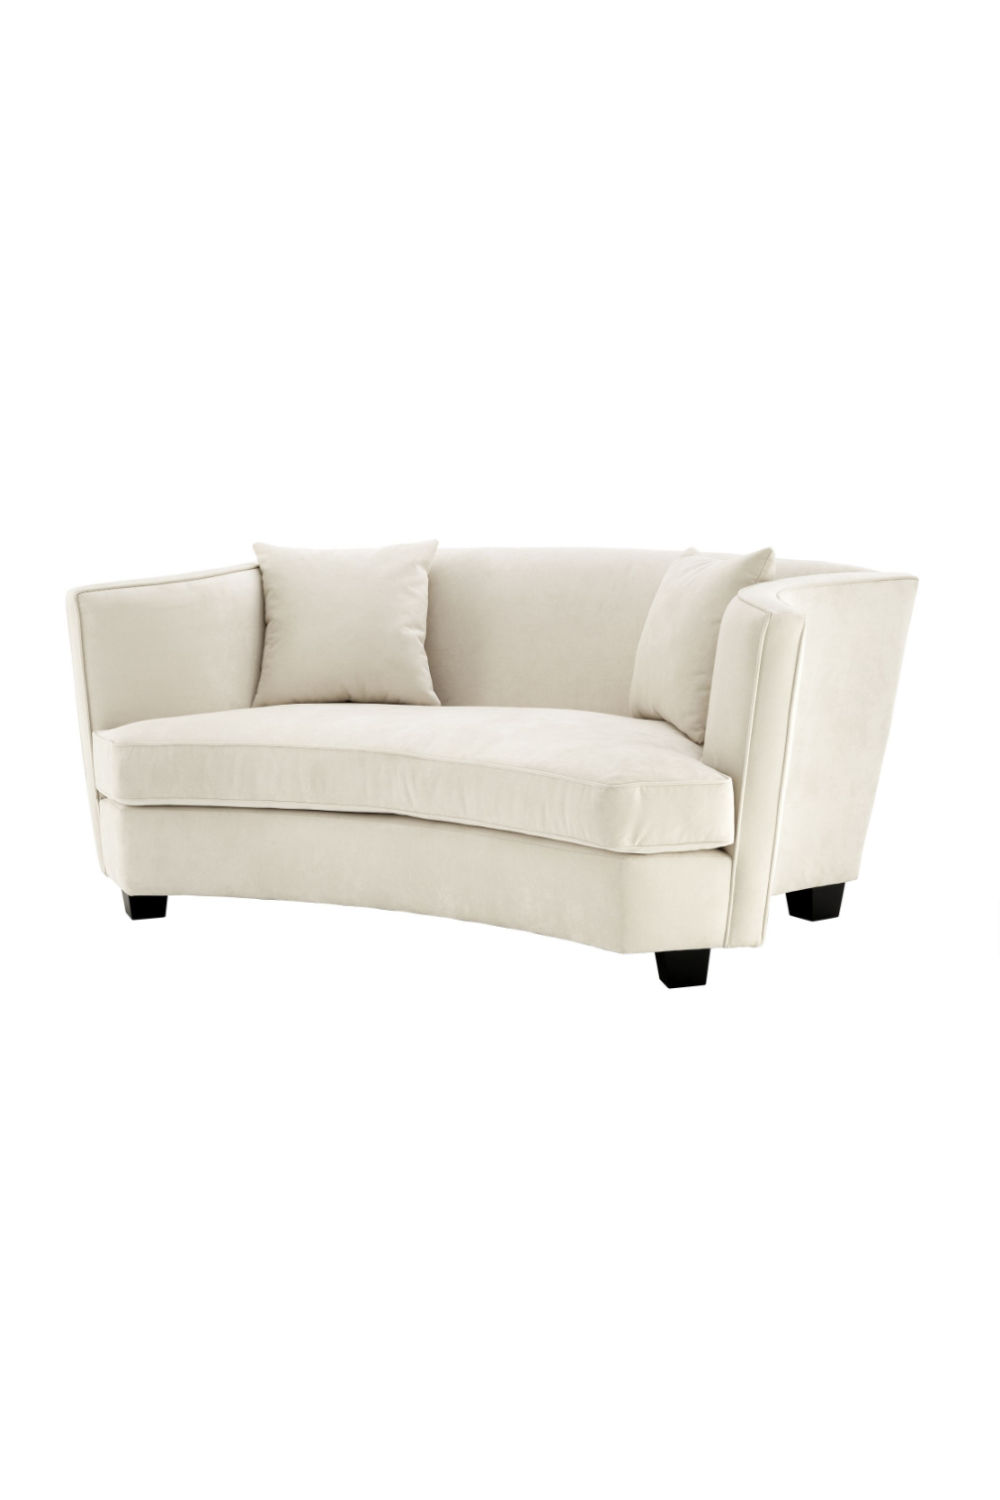 Off White Sofa | Eichholtz Giulietta | Woodfurniture.com